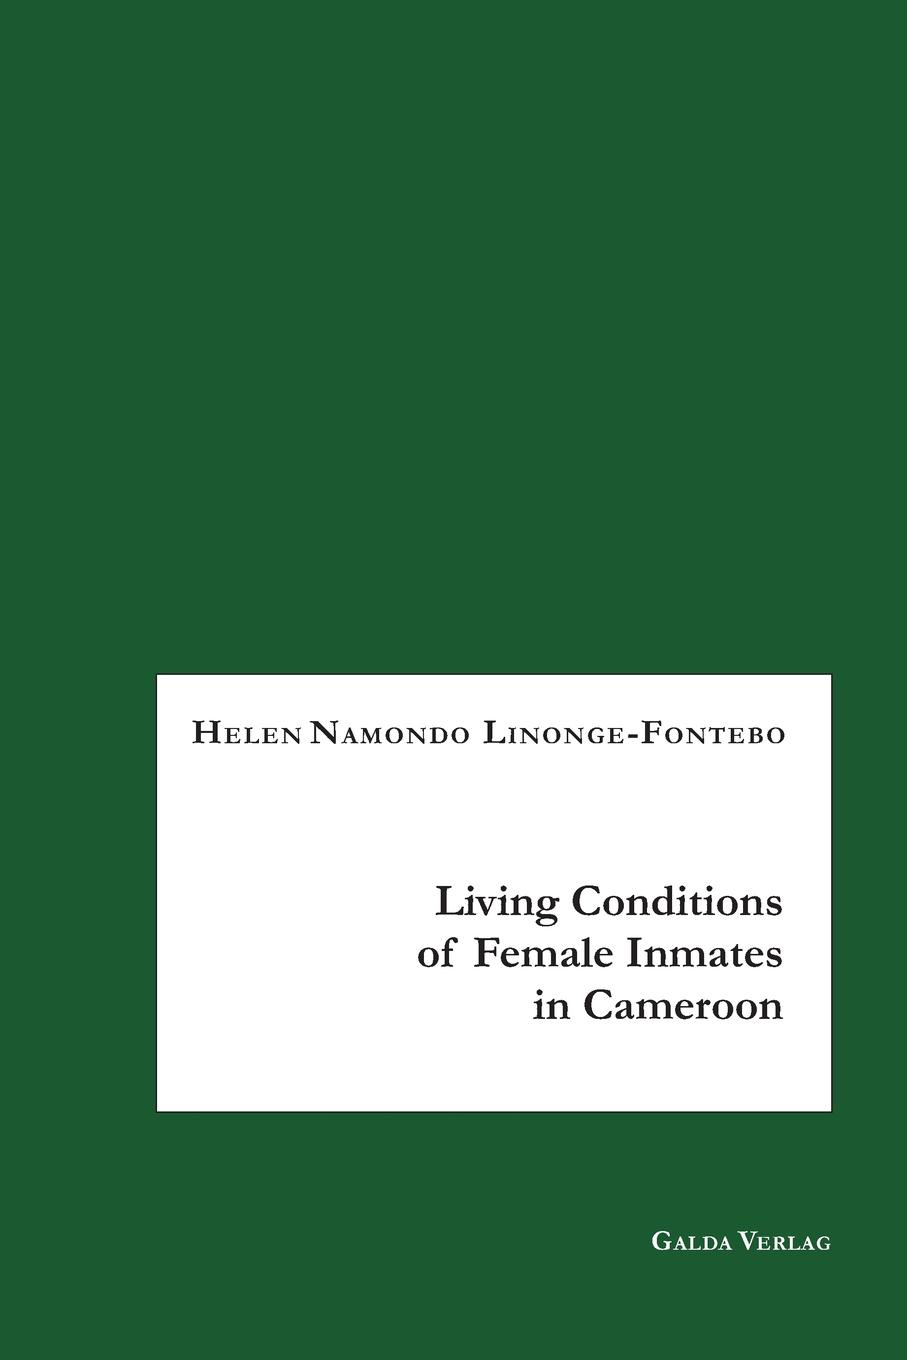 Helen Namondo Linonge-Fontebo Living Conditions of Female Inmates in Cameroon police corruption in cameroon and uganda